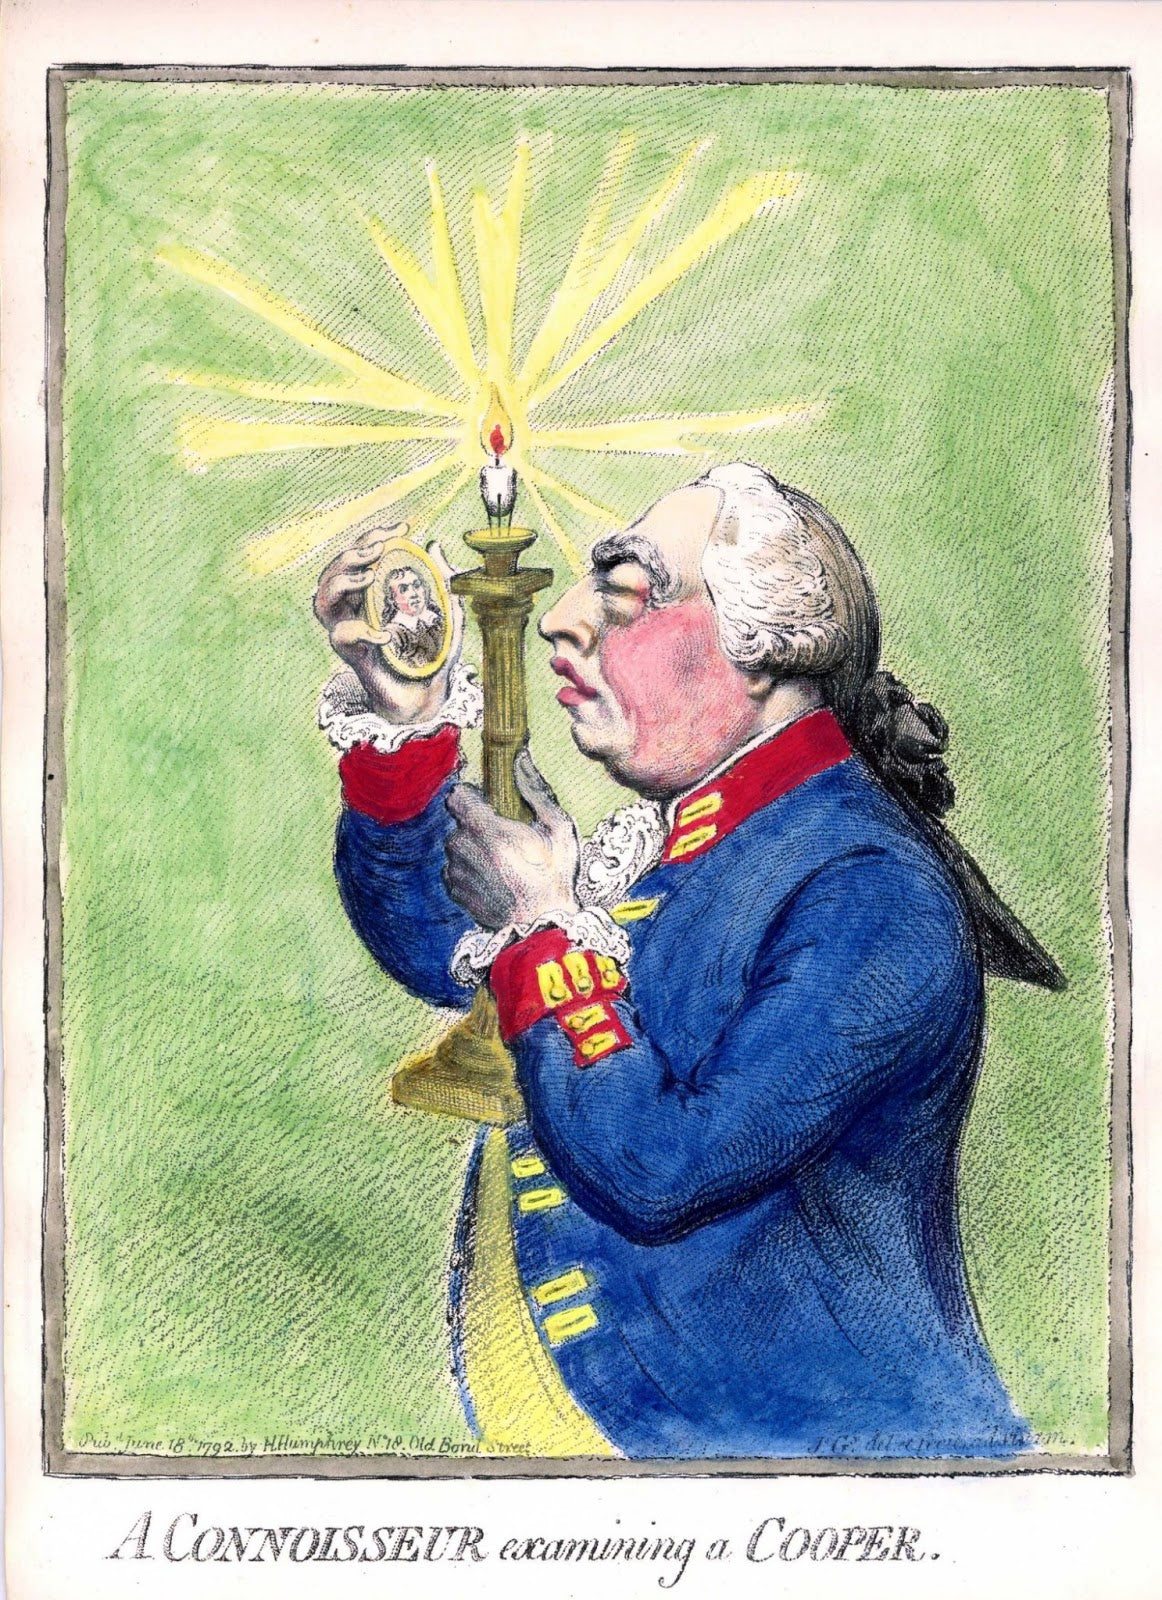 A Connoisseur Examining a Cooper, by Gillray, 1792